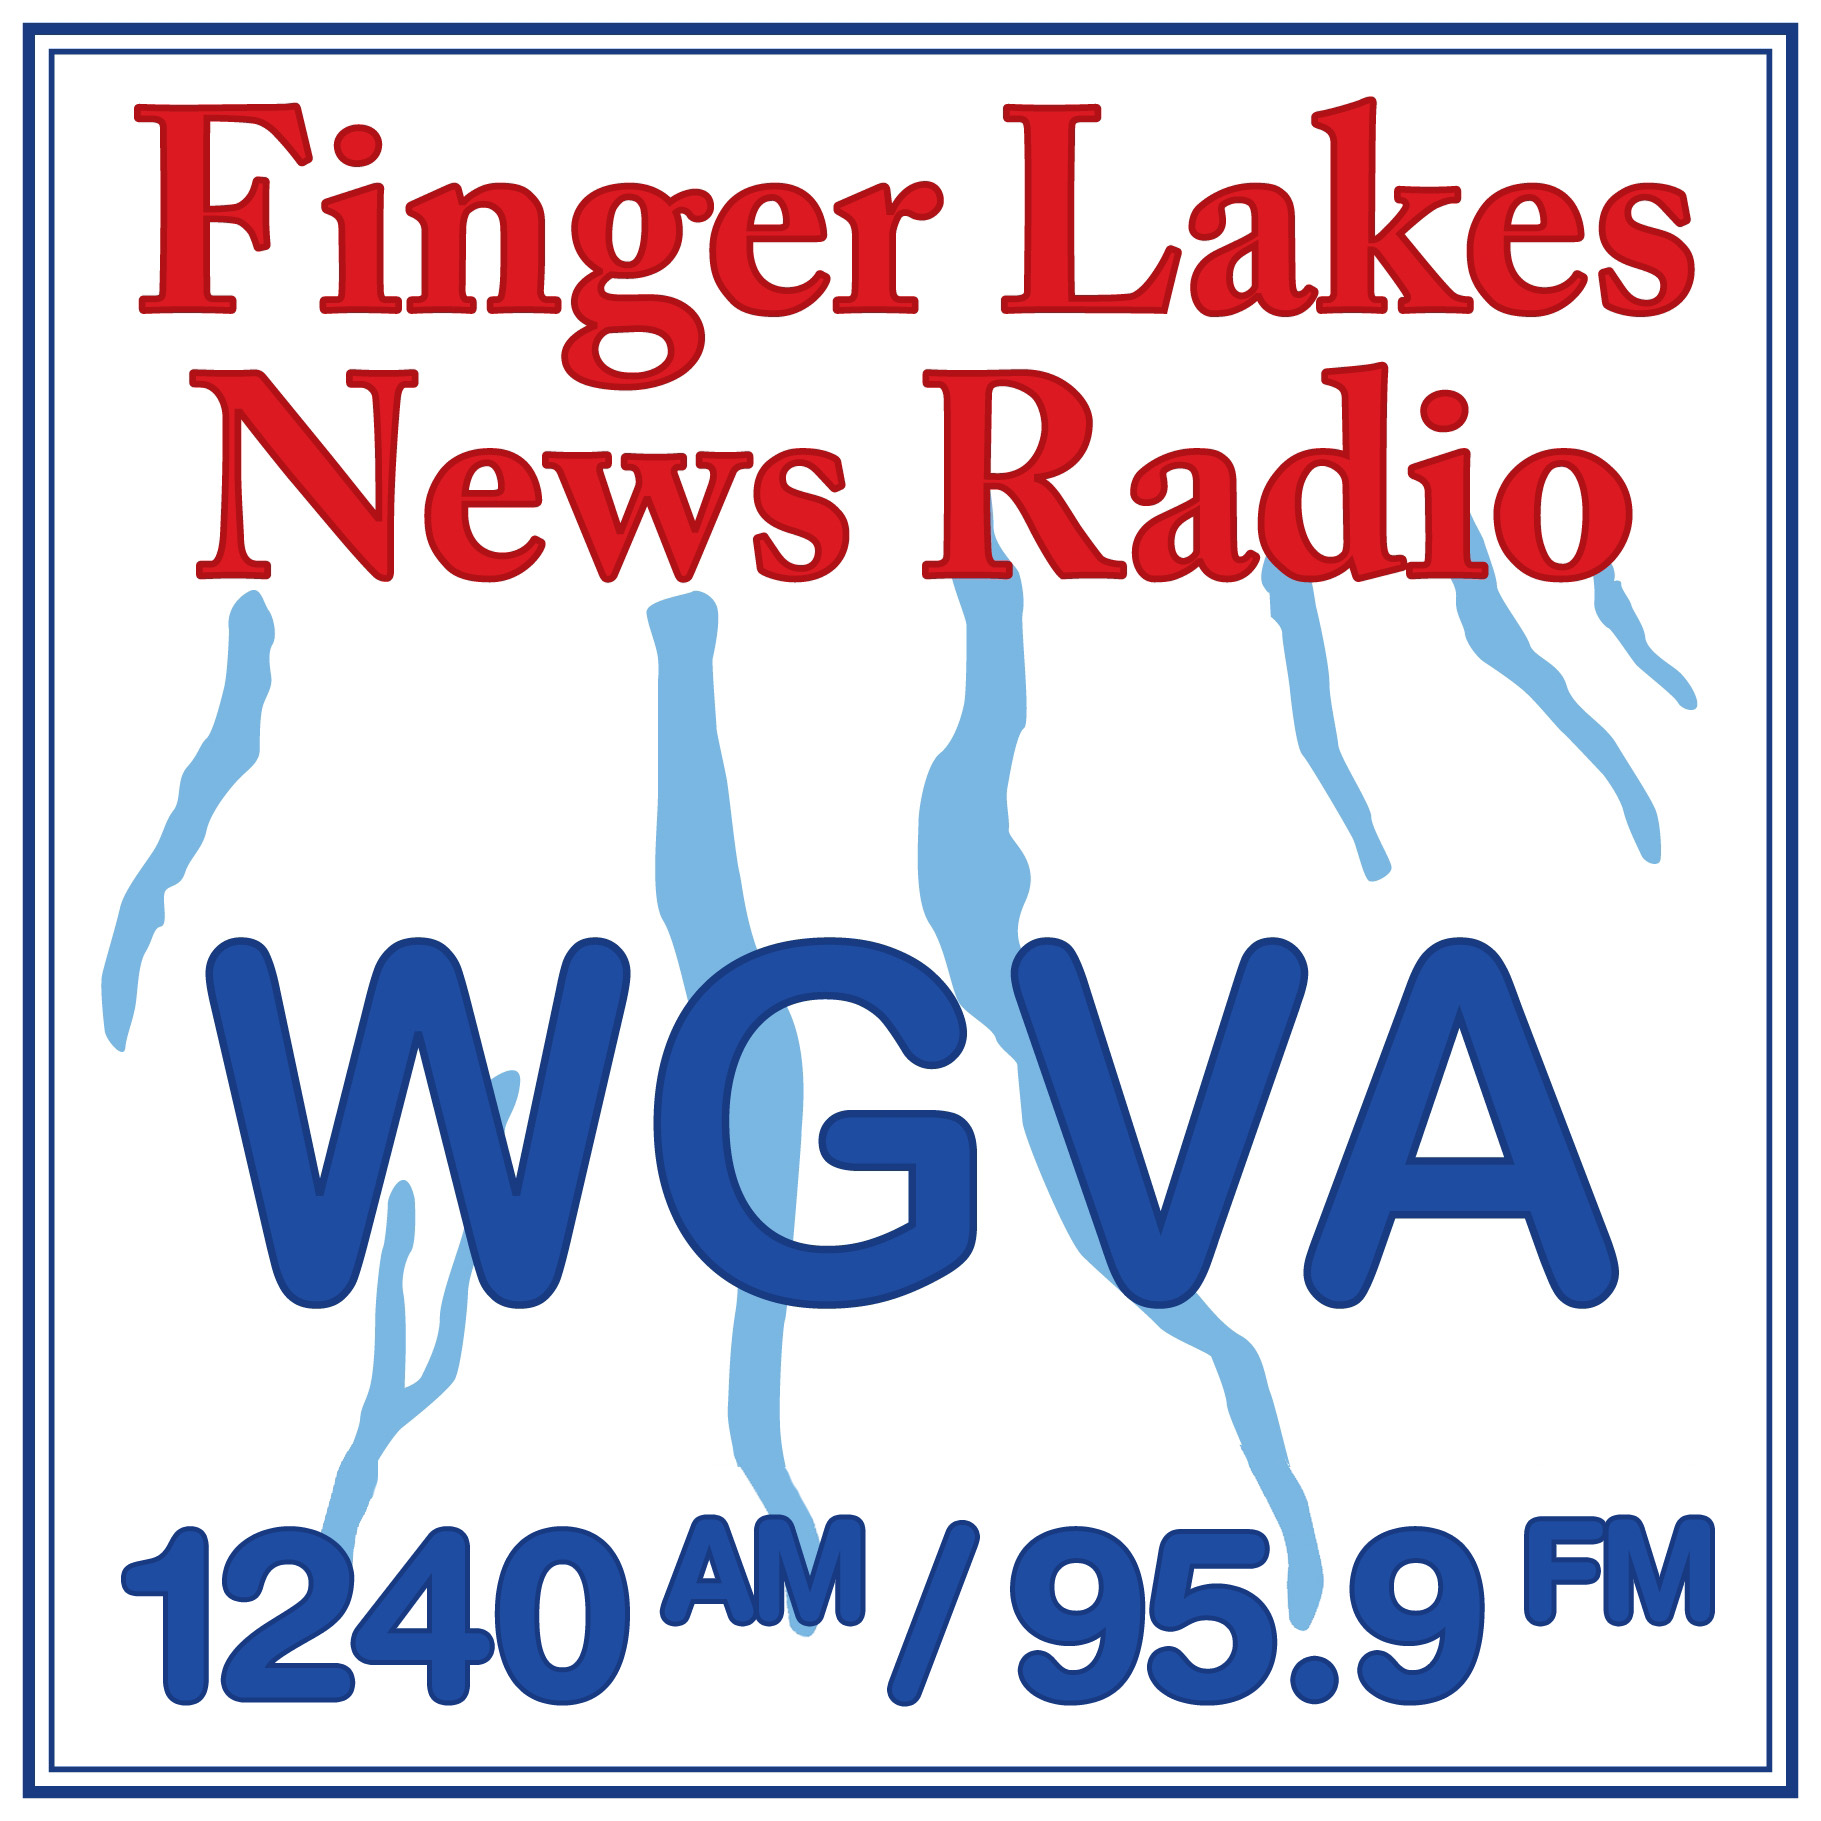 Feature: http://www.fingerlakesdailynews.com/96-1240-wgva/